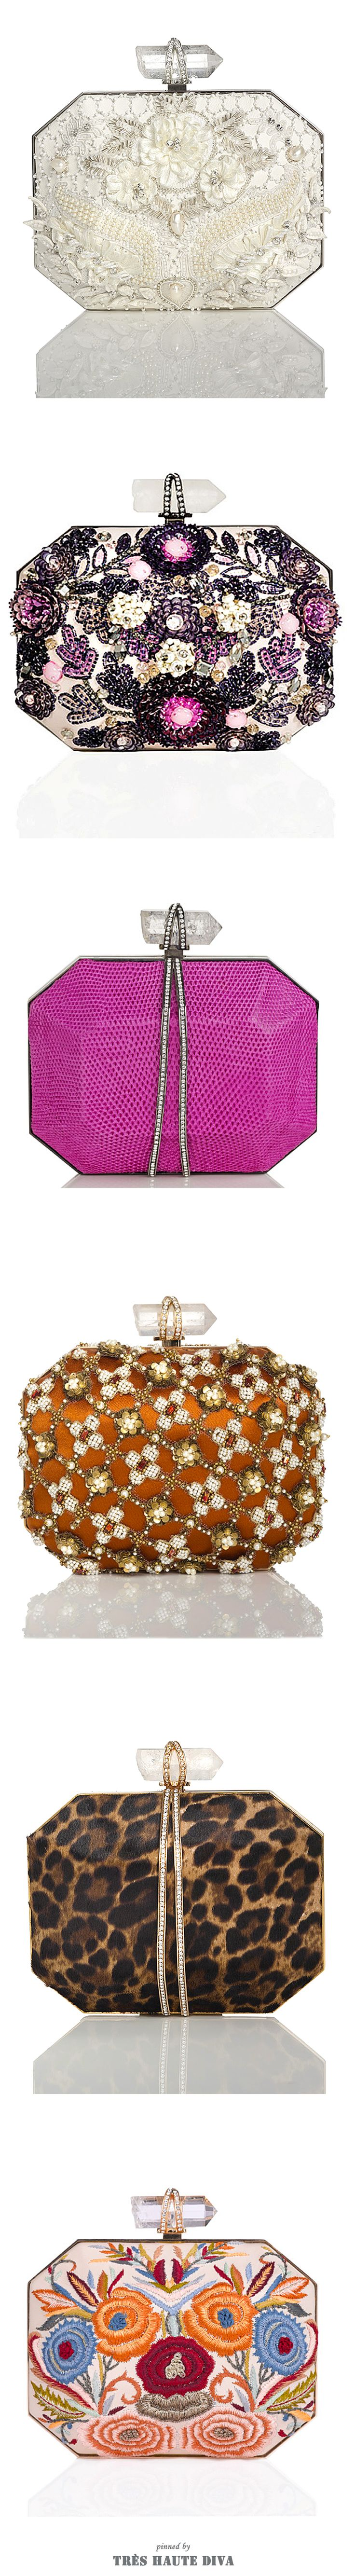 Marchesa ♔ Evening Clutches 2014-15